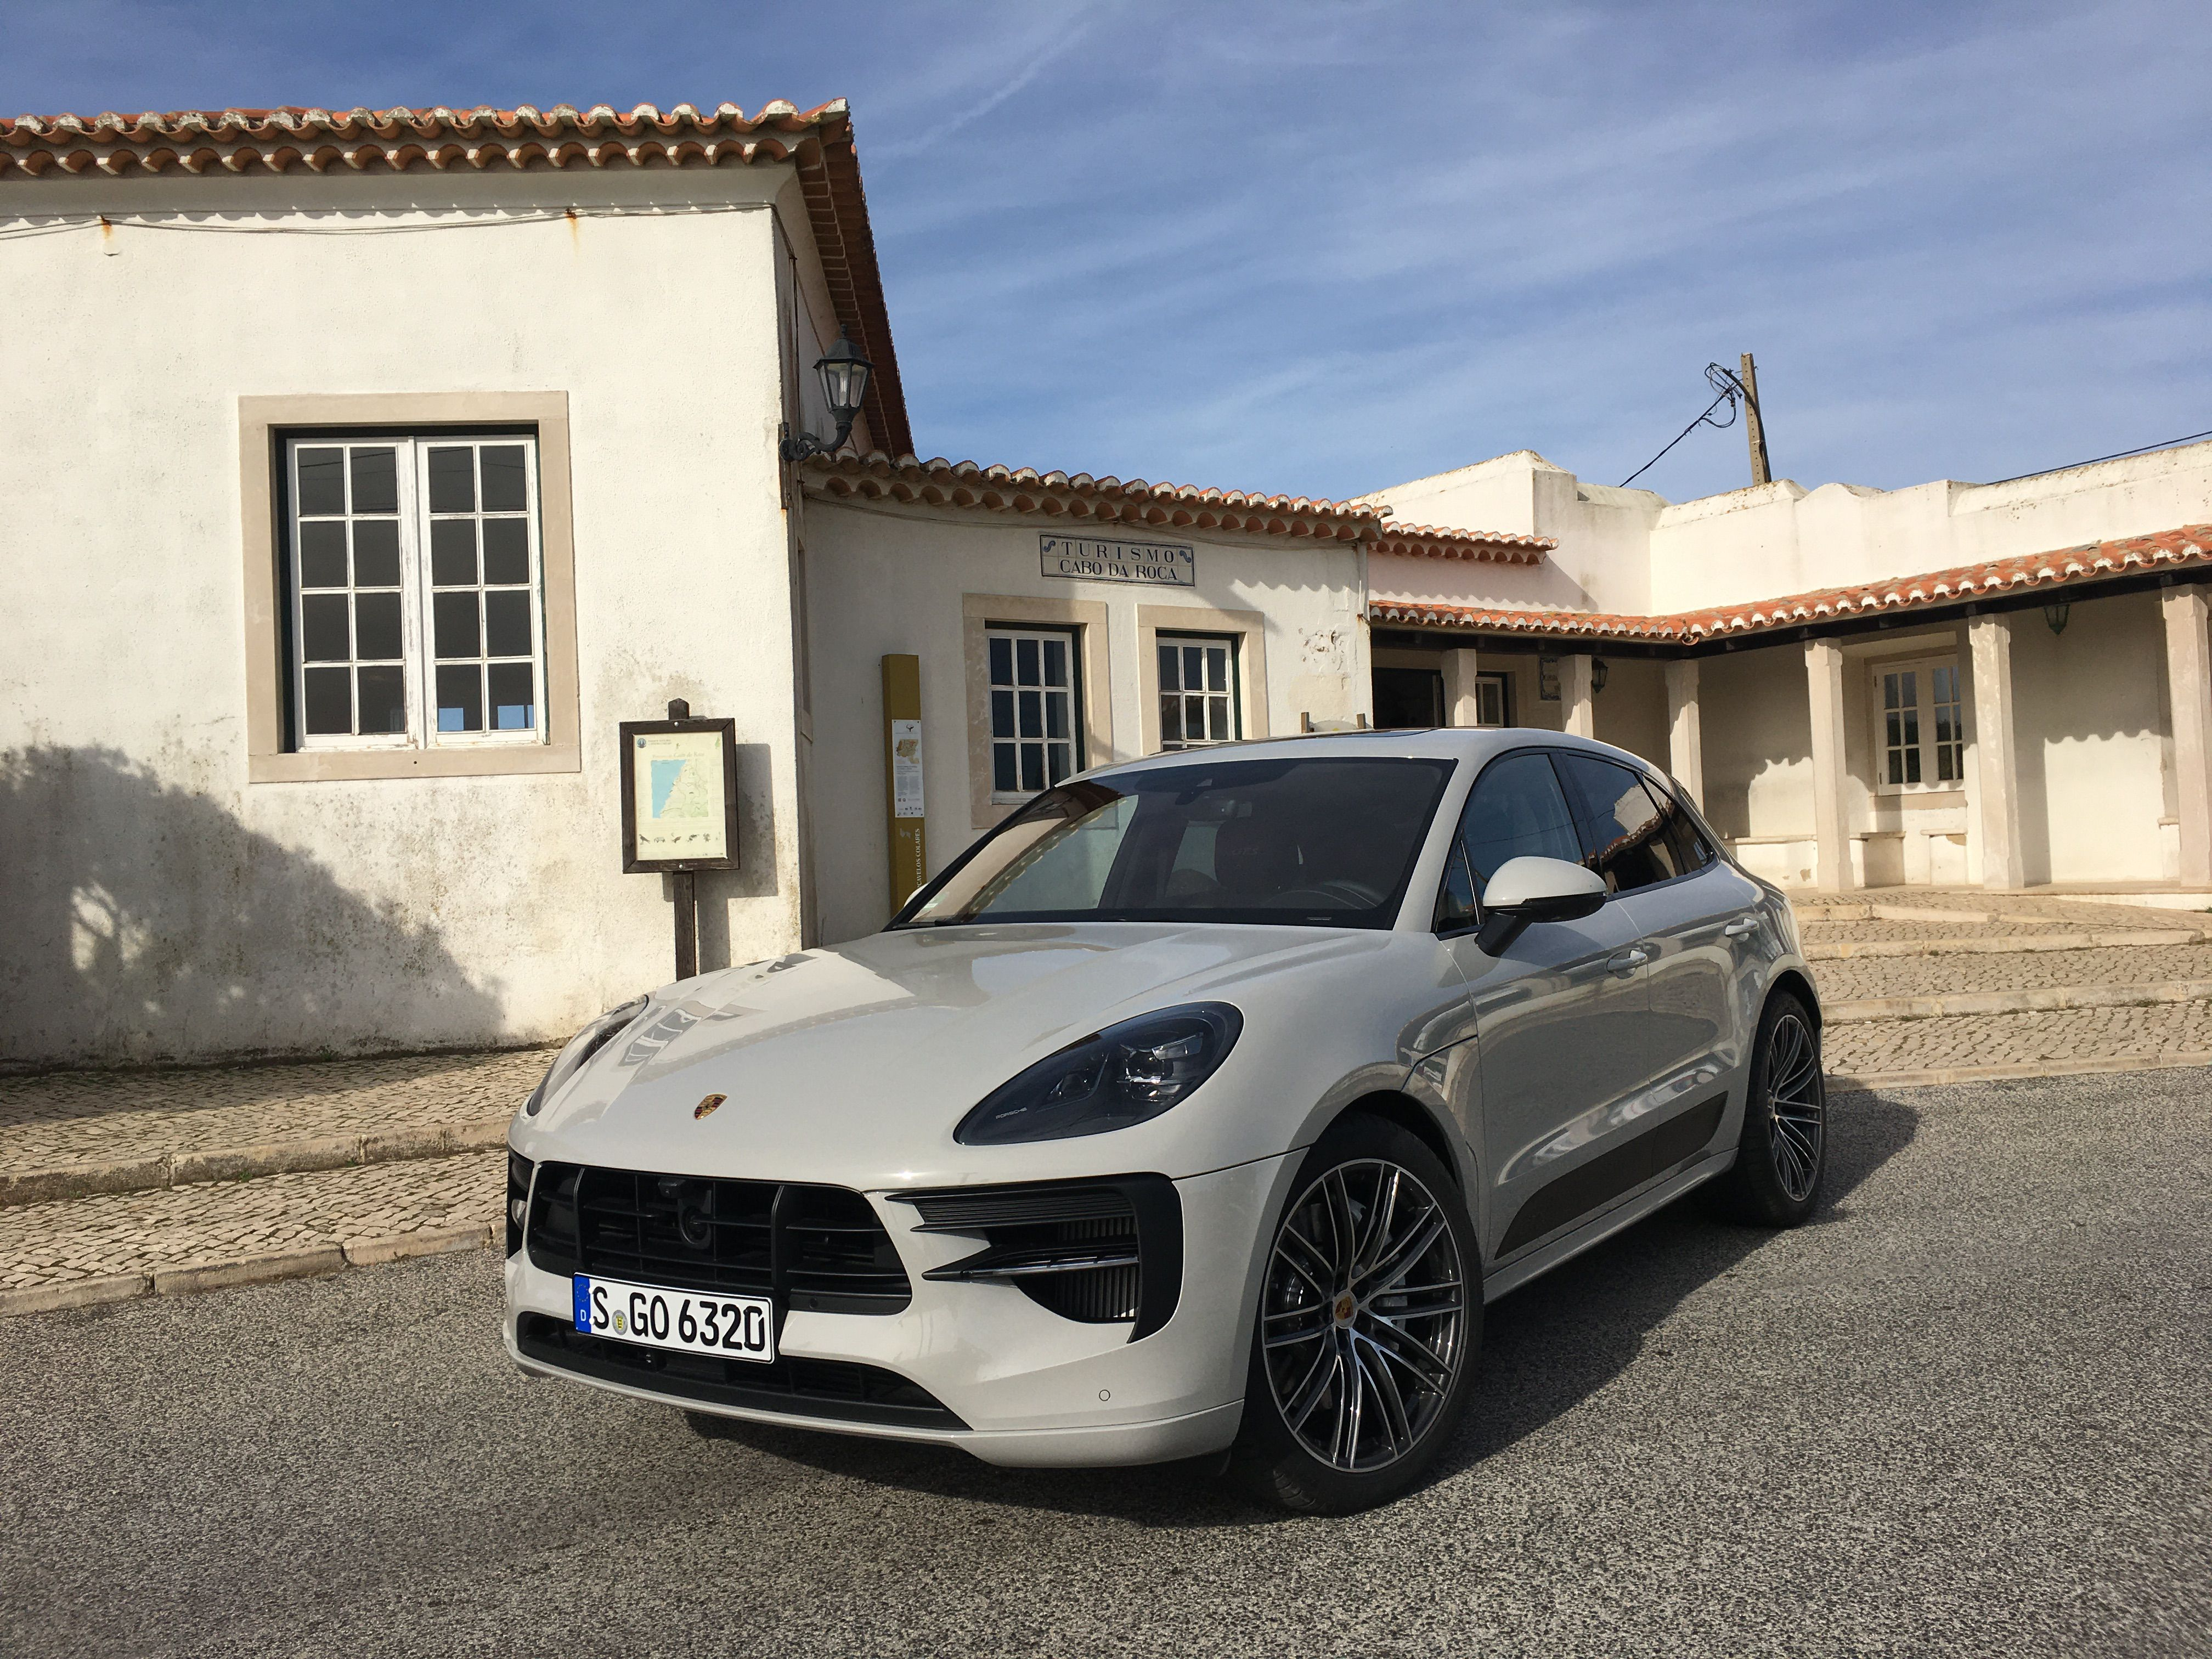 Review The 2020 Macan Gts Has The Soul Of A Porsche Sports Car In The Body Of An Suv The Globe And Mail